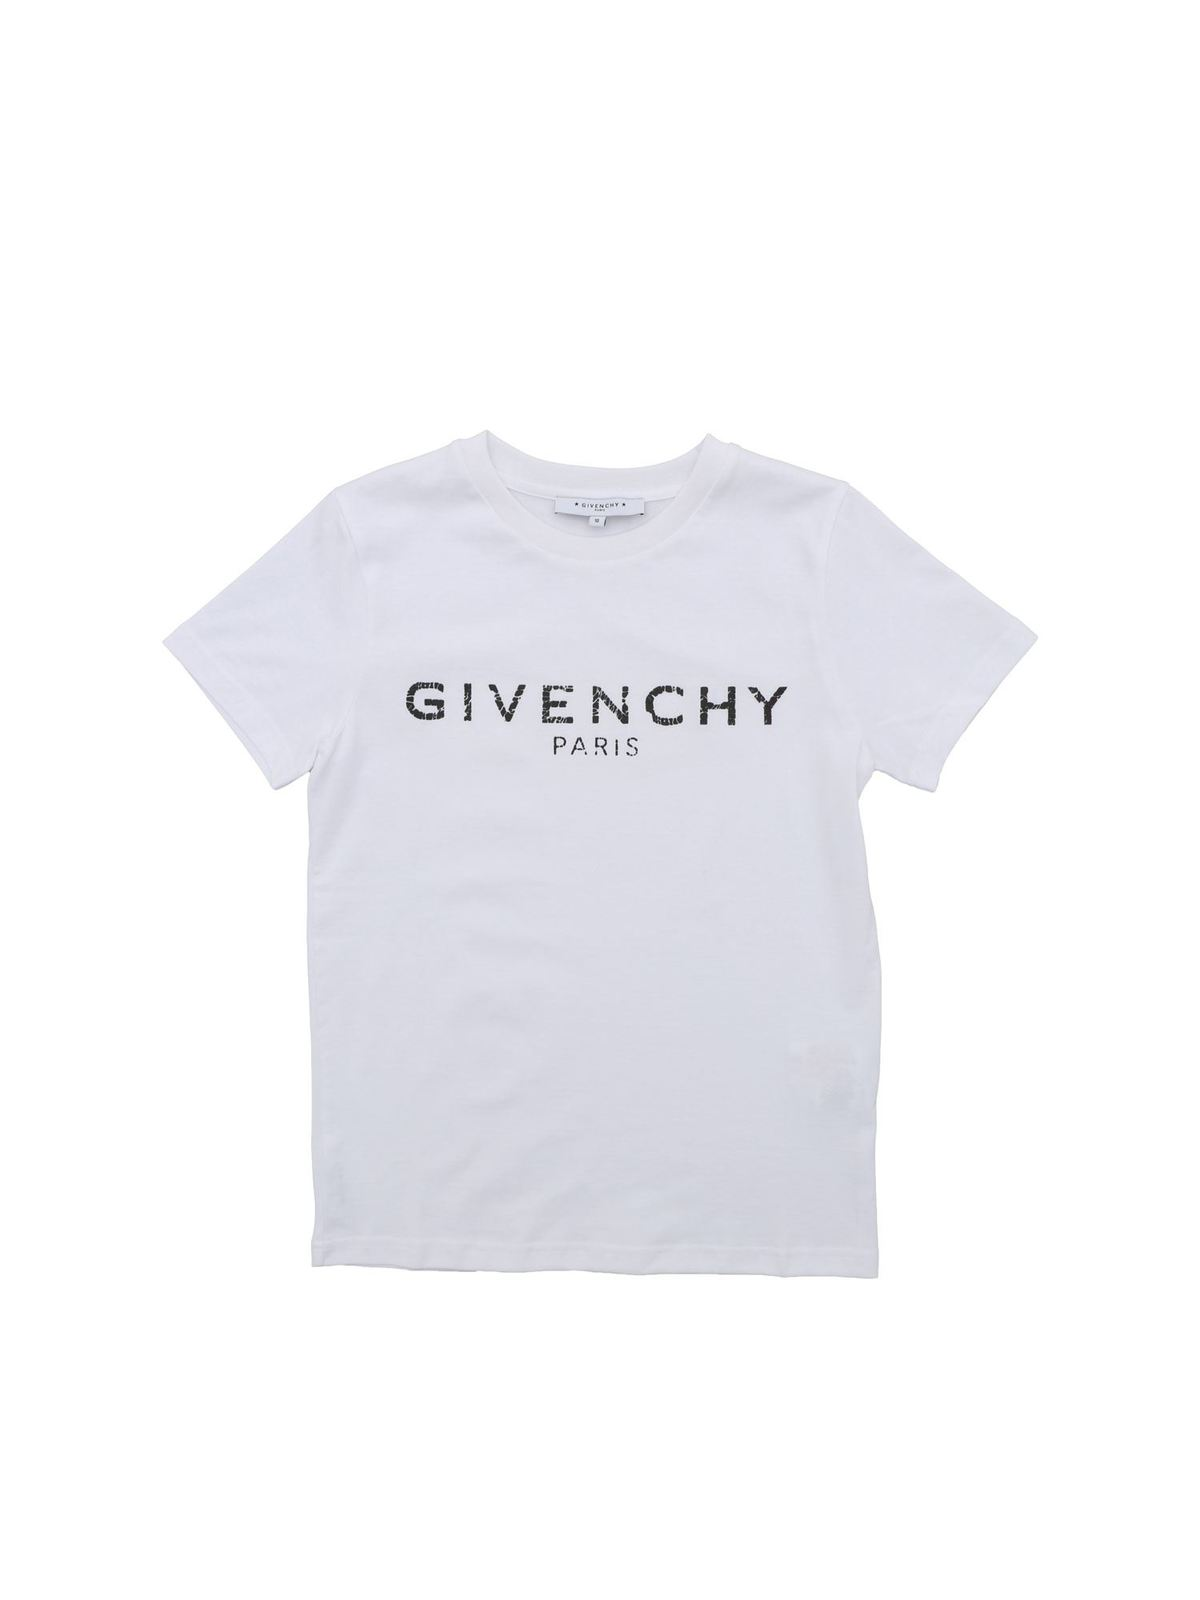 Givenchy Kids' Destroyed Effect Logo Print T-shirt In White